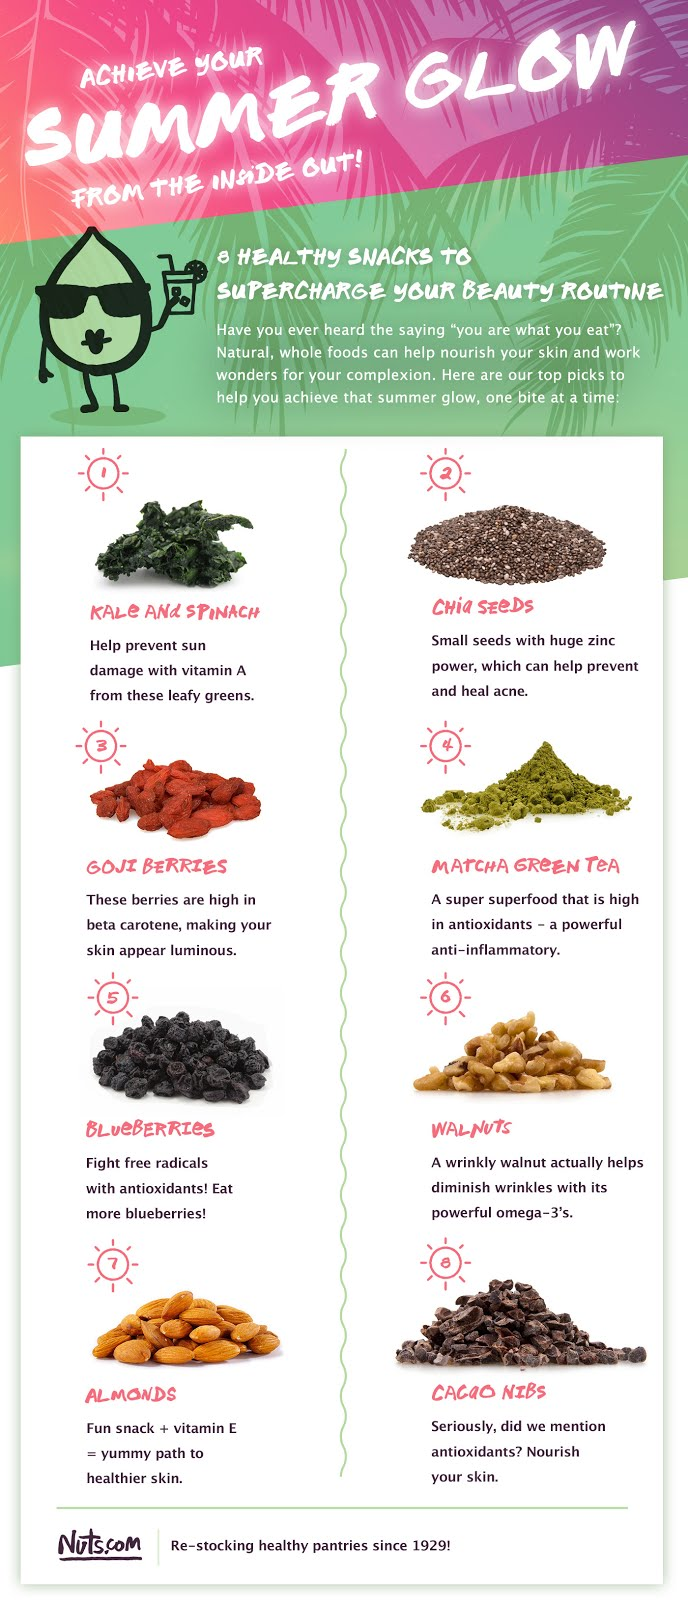 Superfood snacks for healthy skin